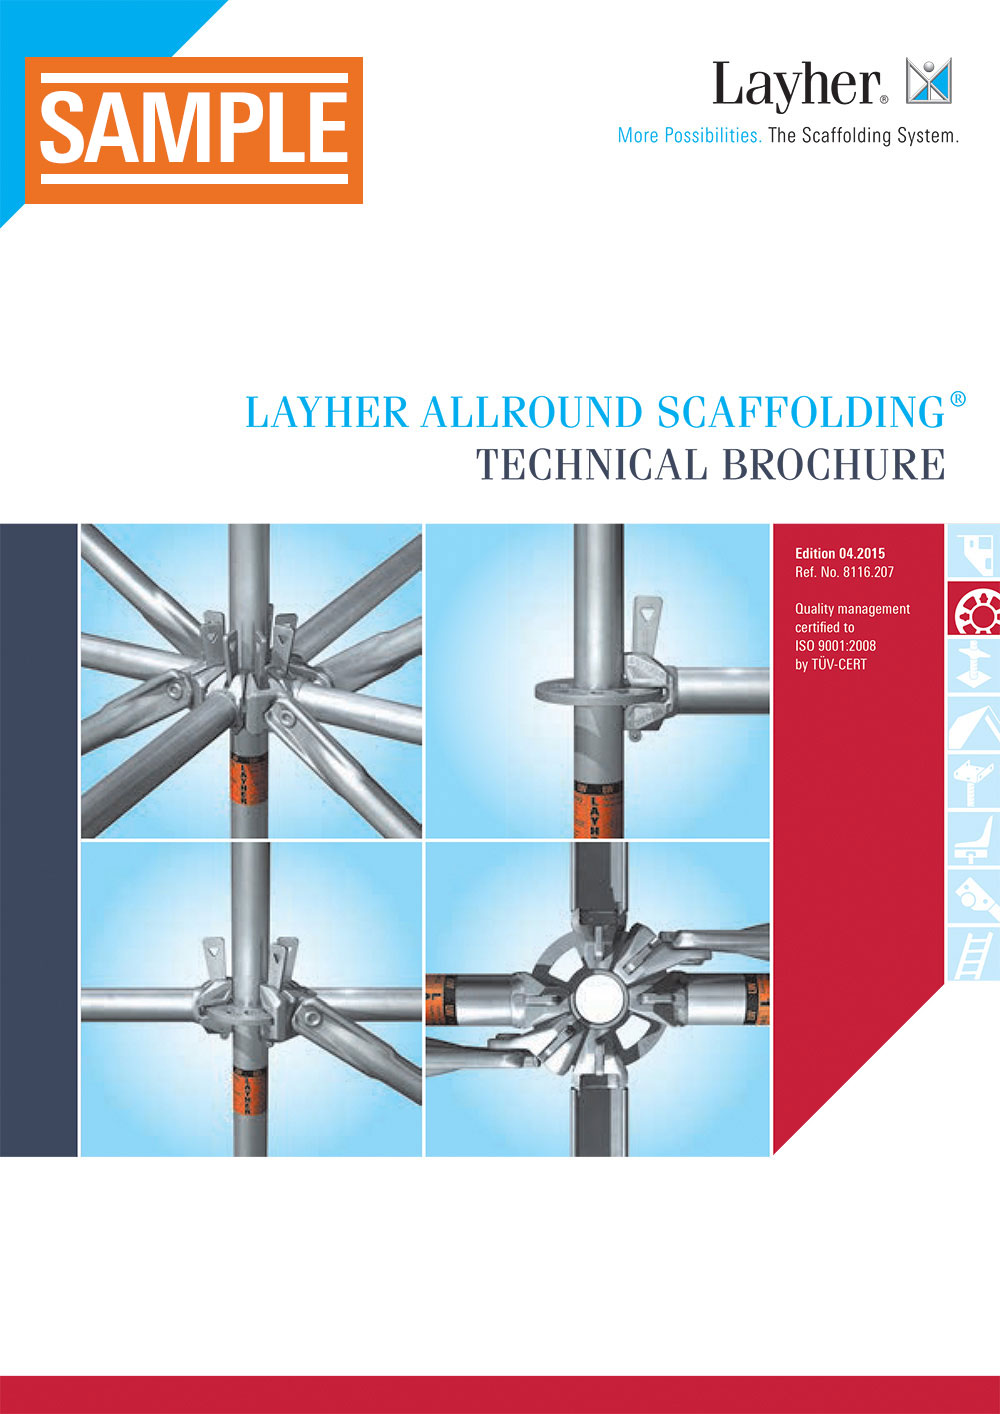 Layher Allround Scaffolding Technical Brochure